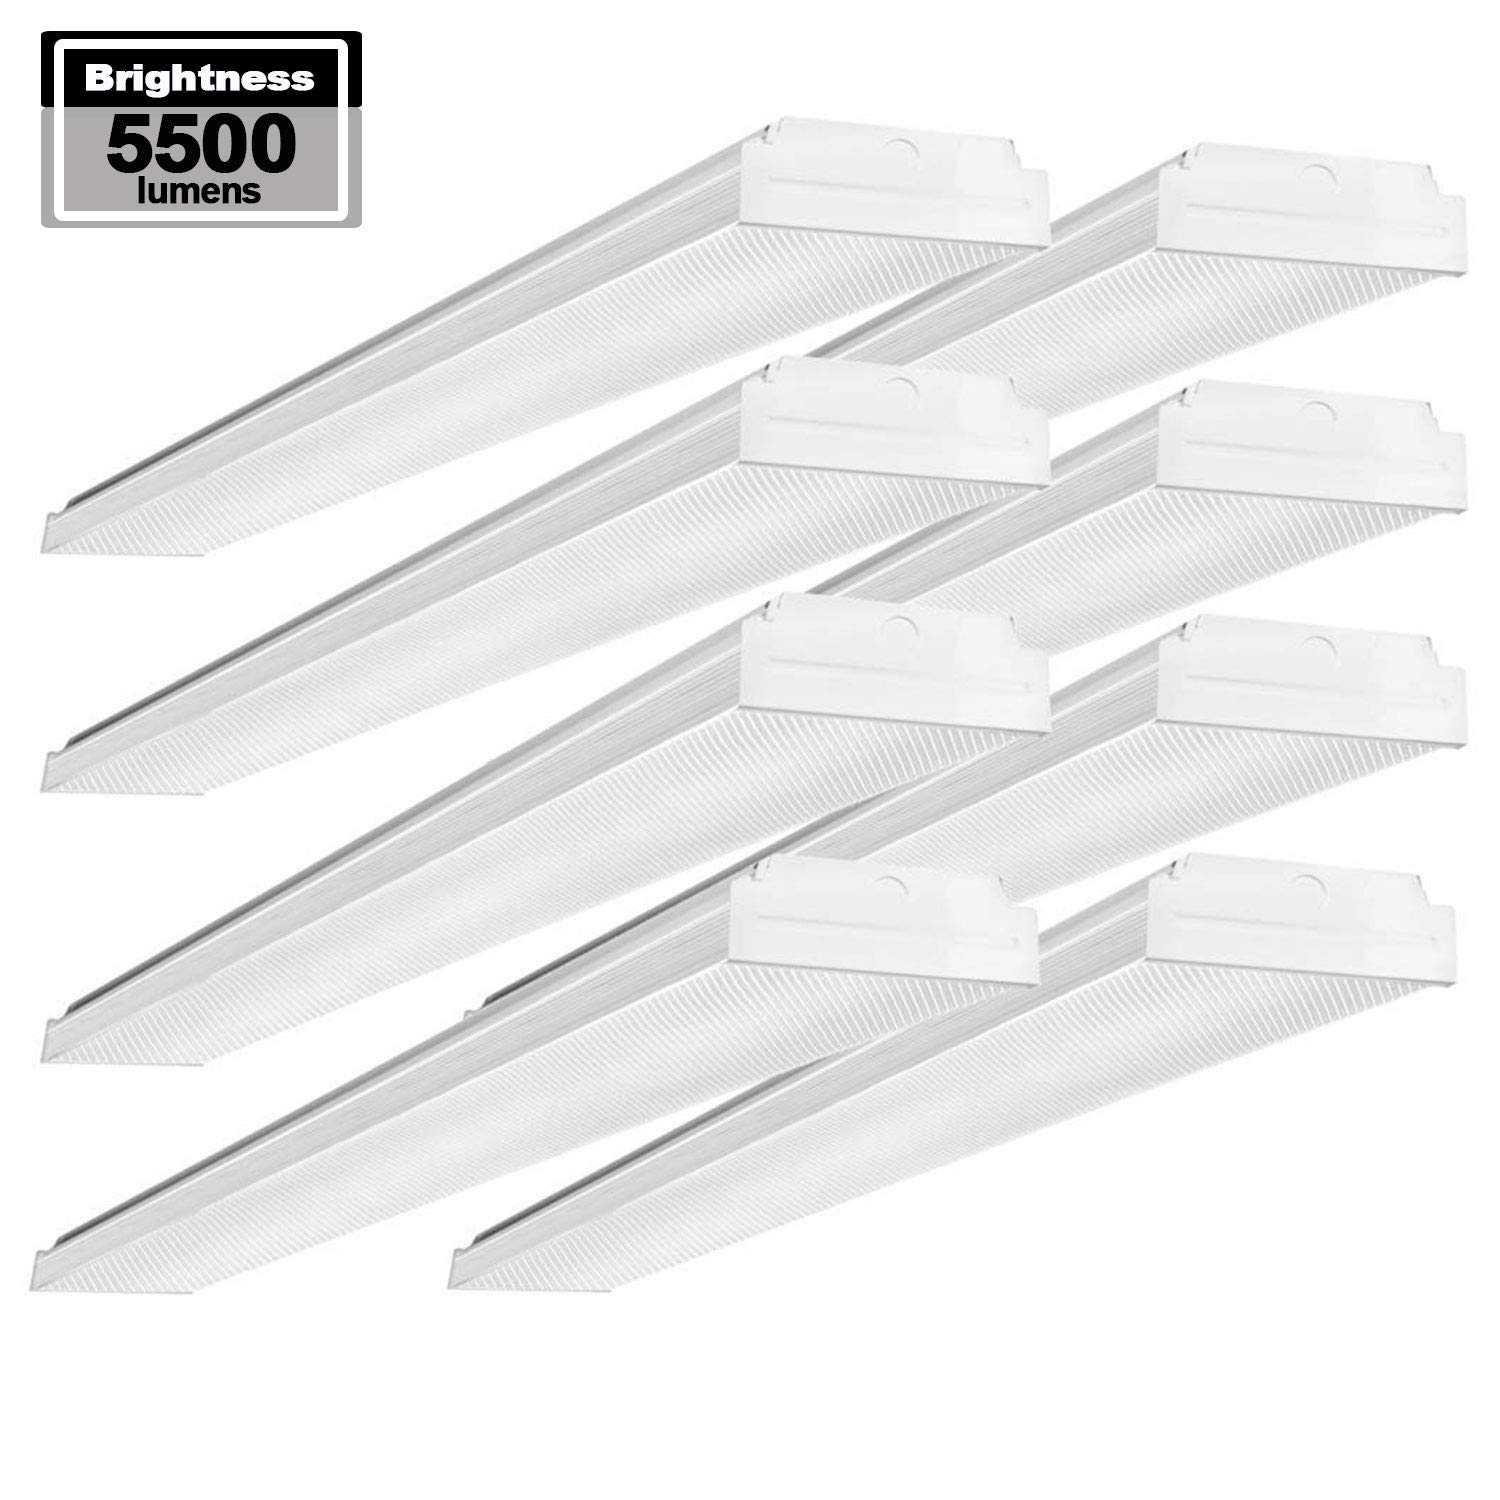 AntLux 4ft LED Garage Shop Lights LED Wraparound Light Fixture - 50W 5500LM - 4000K Neutral White - Integrated Low Profile Linear Flush Mount Ceiling Lighting - 120W Fluorescent Replacement - 8 Pack